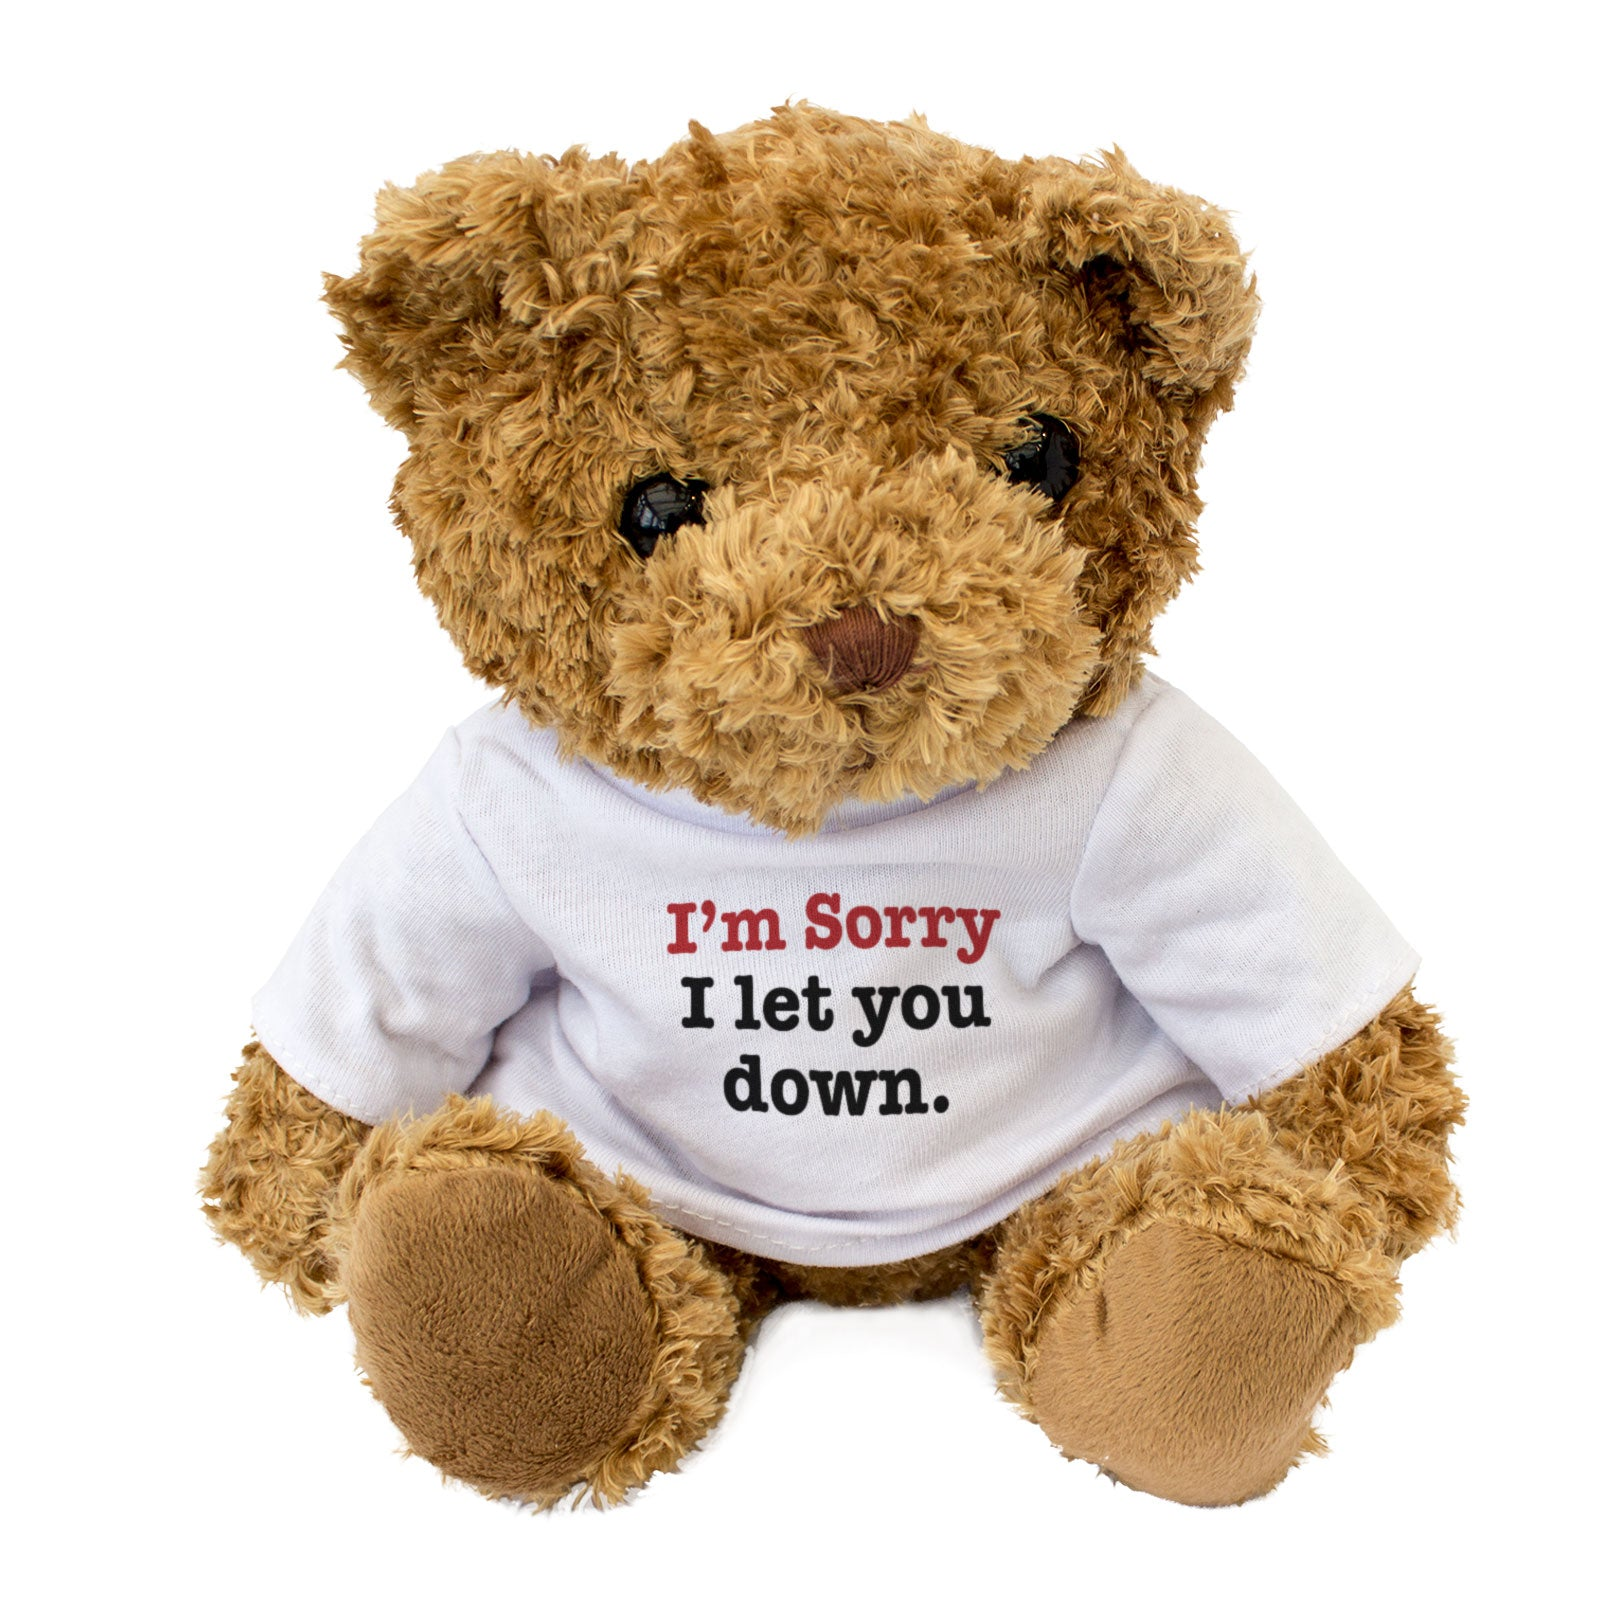 I'm Sorry I Let You Down Teddy Bear Apology Gift